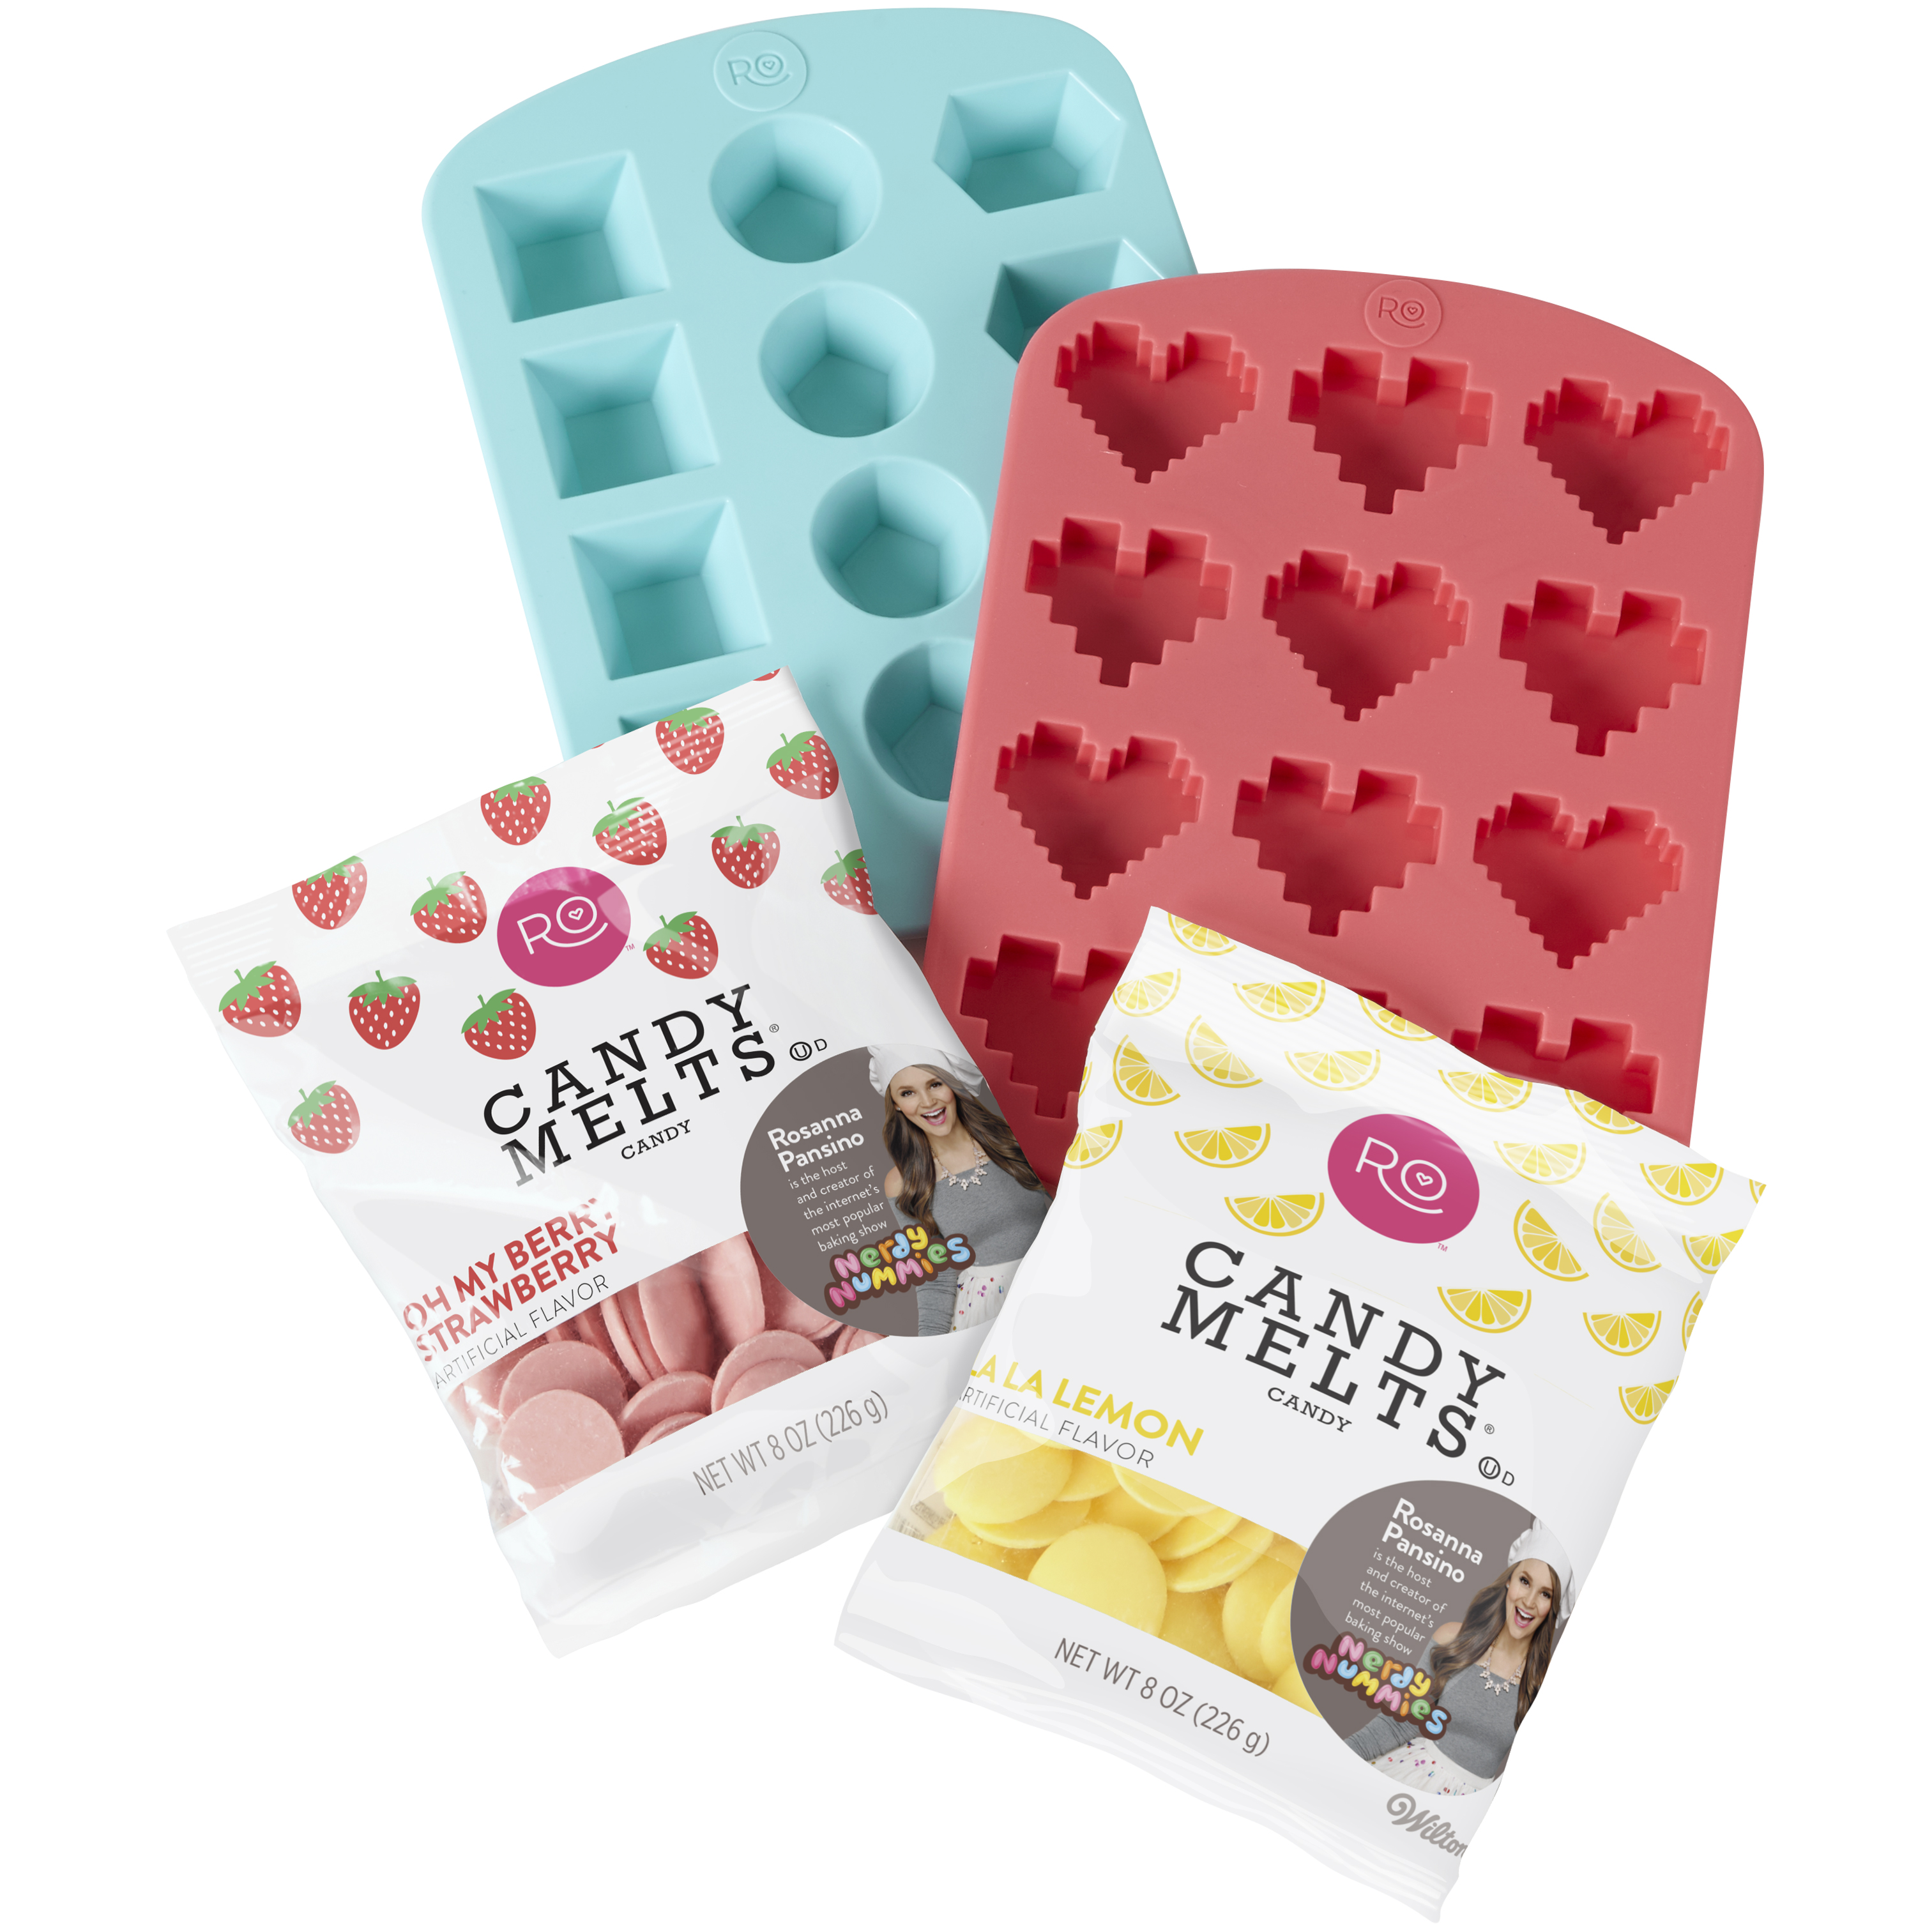 Wilton Rosanna Pansino Hearts n' Gems Candy Making Set